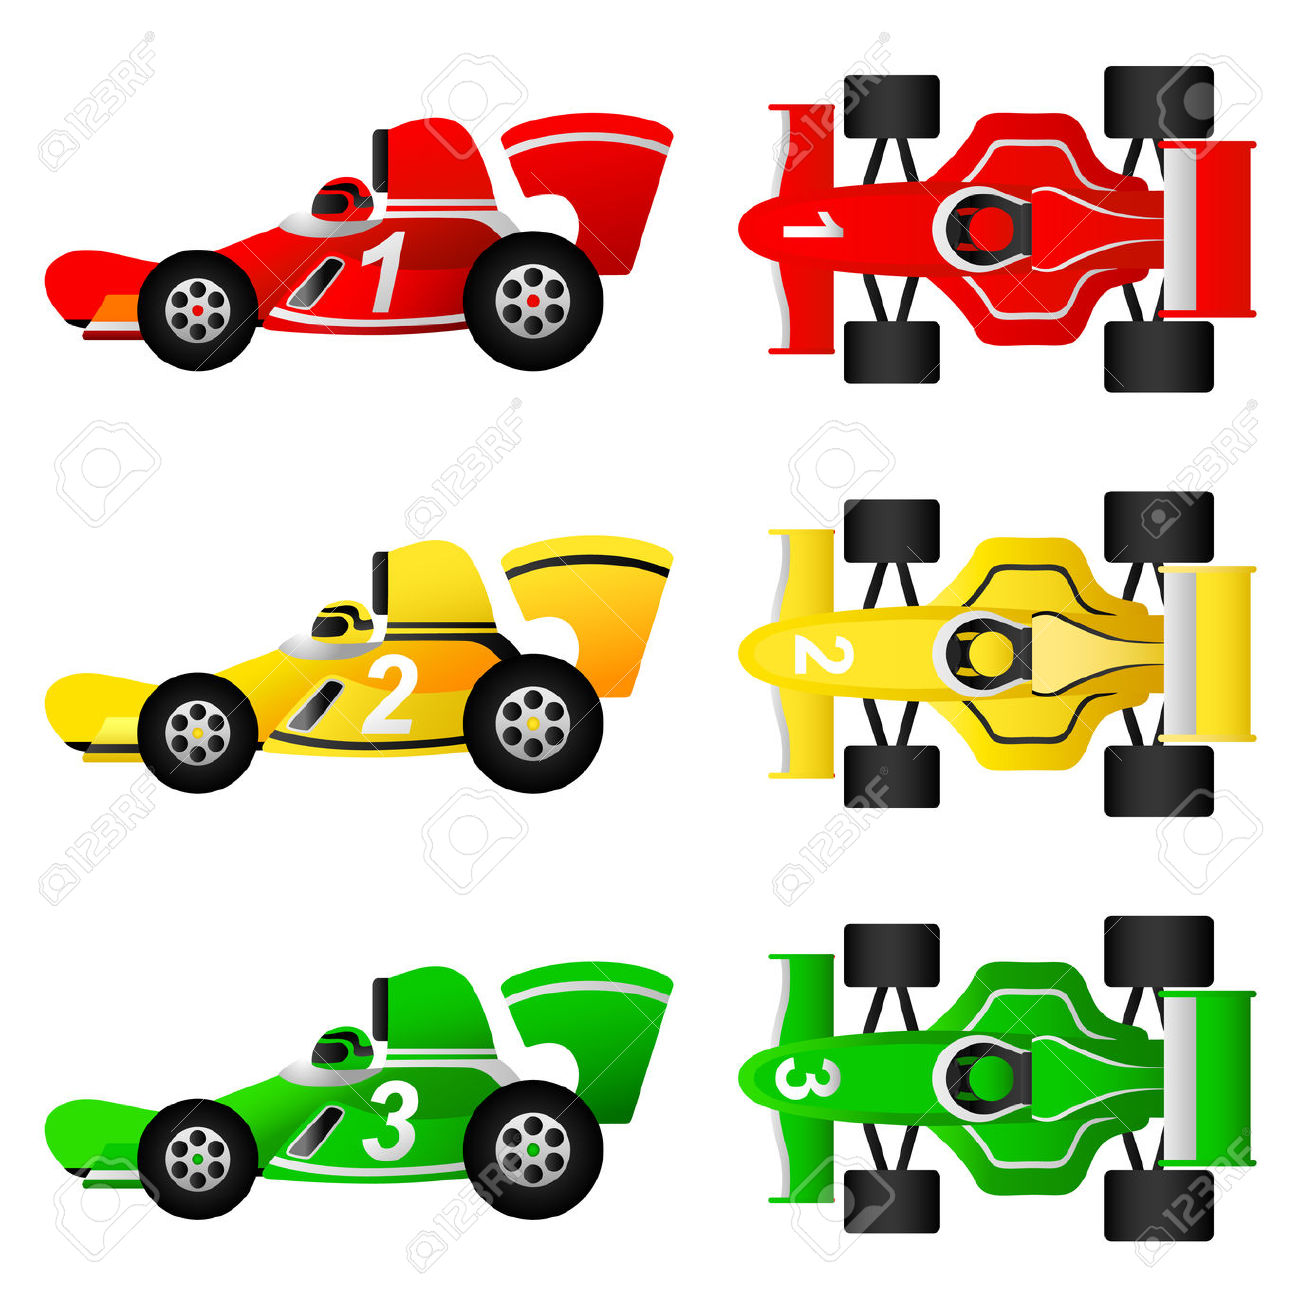 Car free . Formula 1 cars clipart